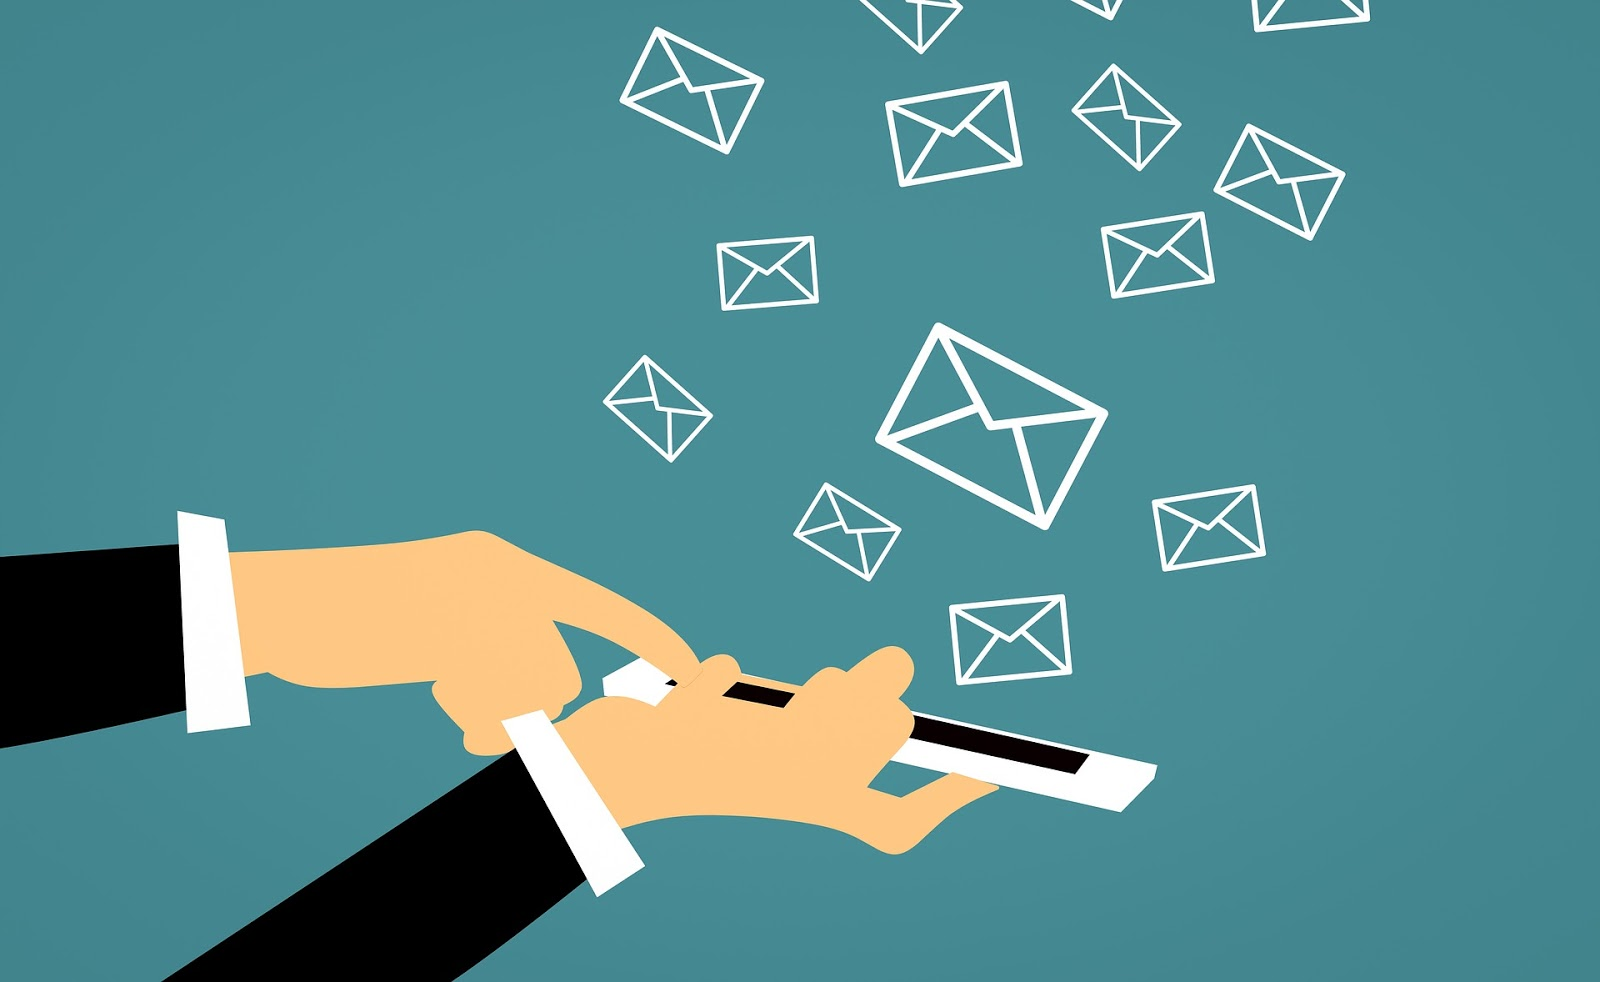 Benefits of MSG91 for start-ups to engage more customer via SMS